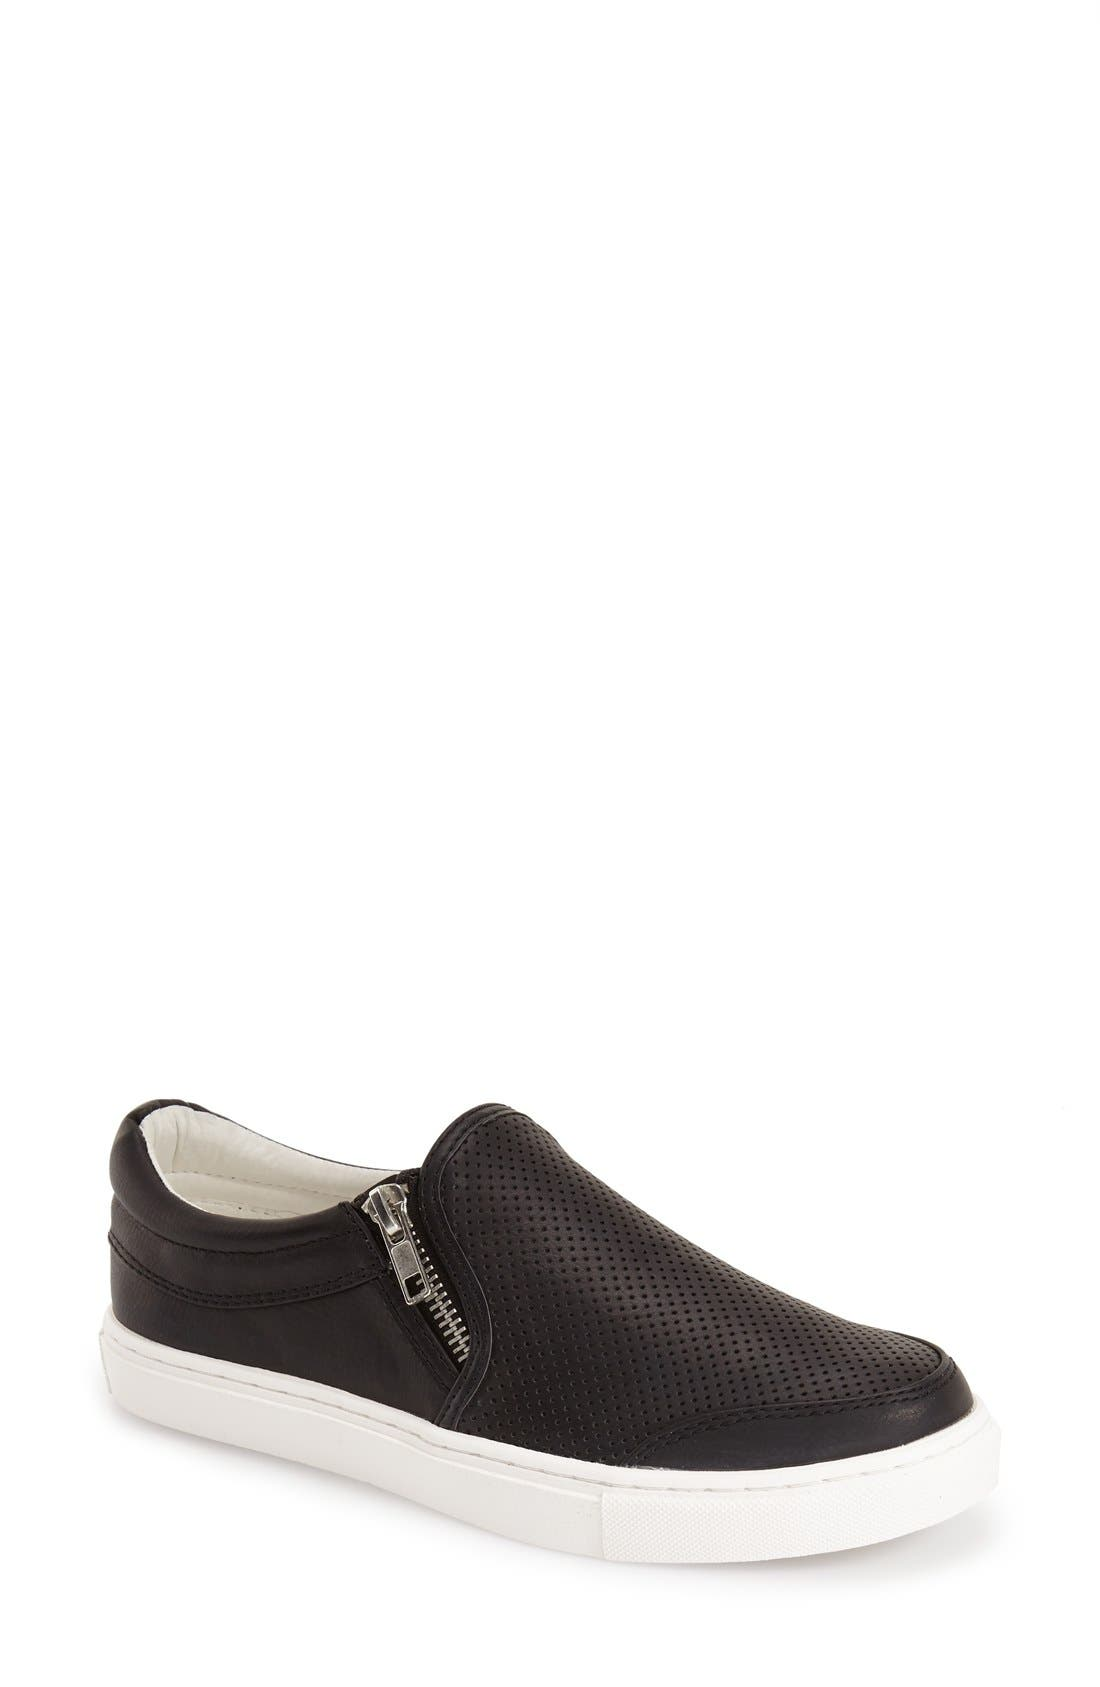 Alternate Image 1 Selected - Steve Madden 'Ellias' Slip-On Sneaker (Women)